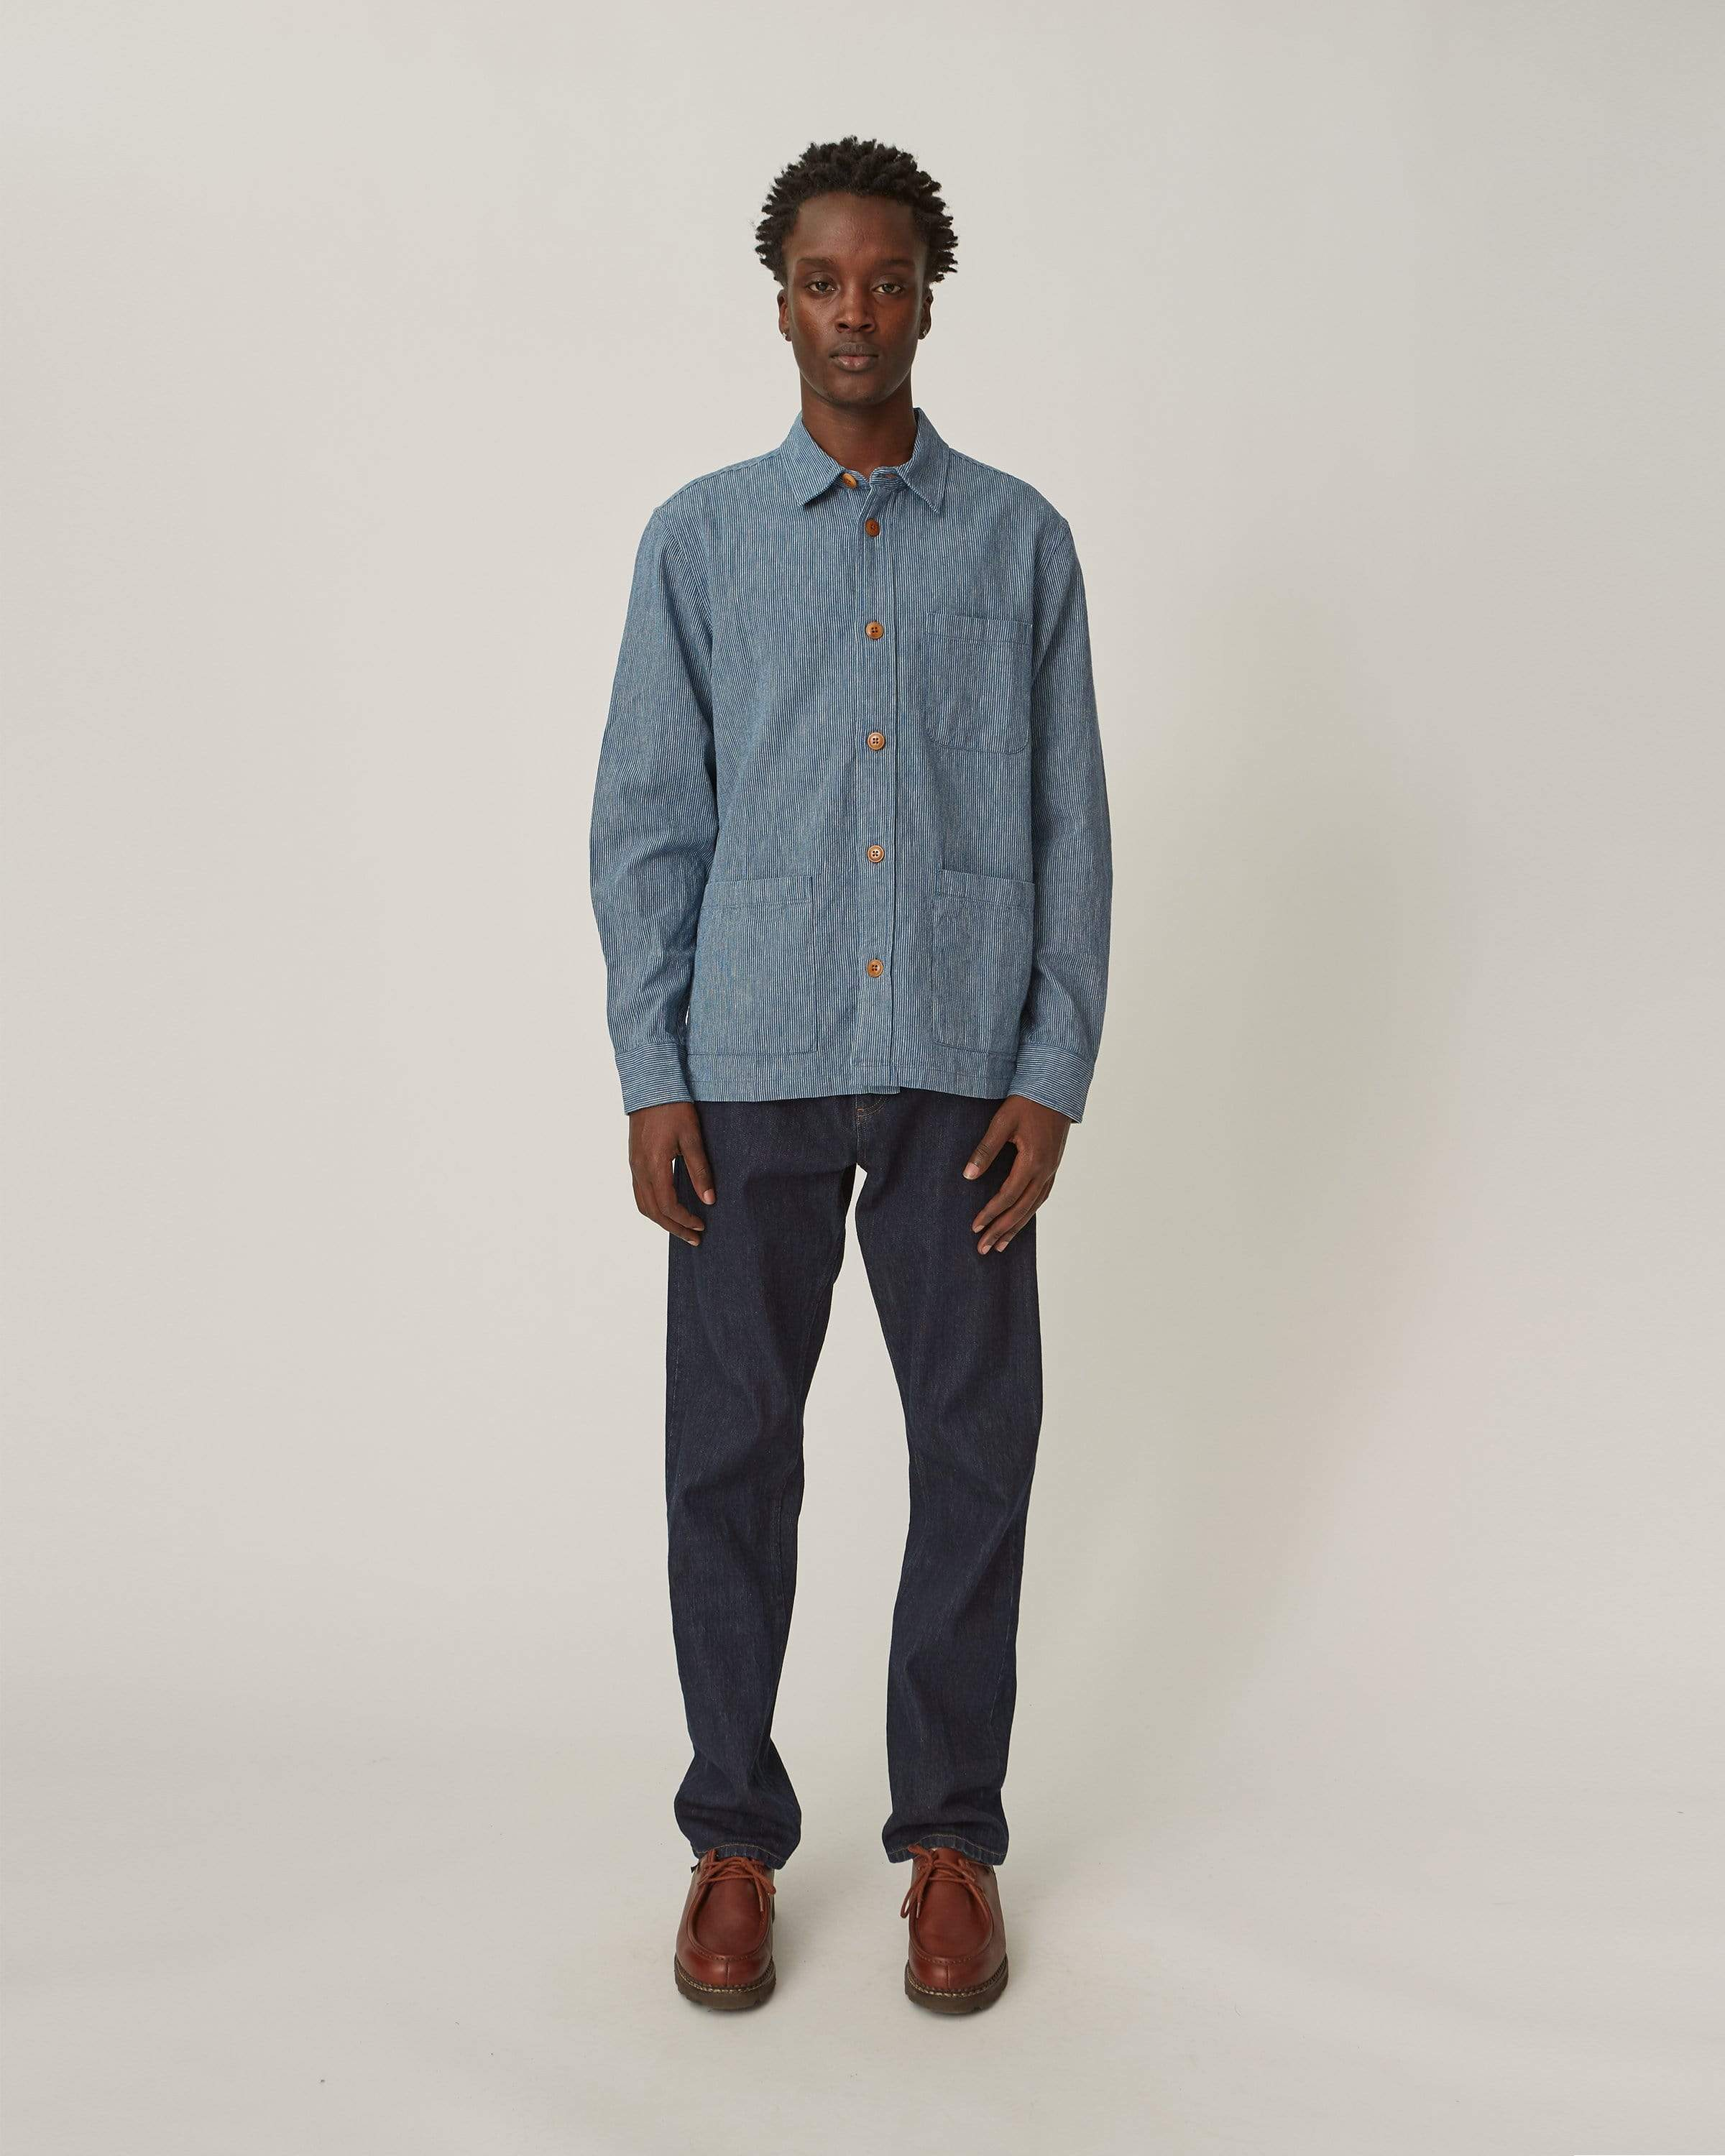 Ticking Stripe Linen Overshirt - Indigo